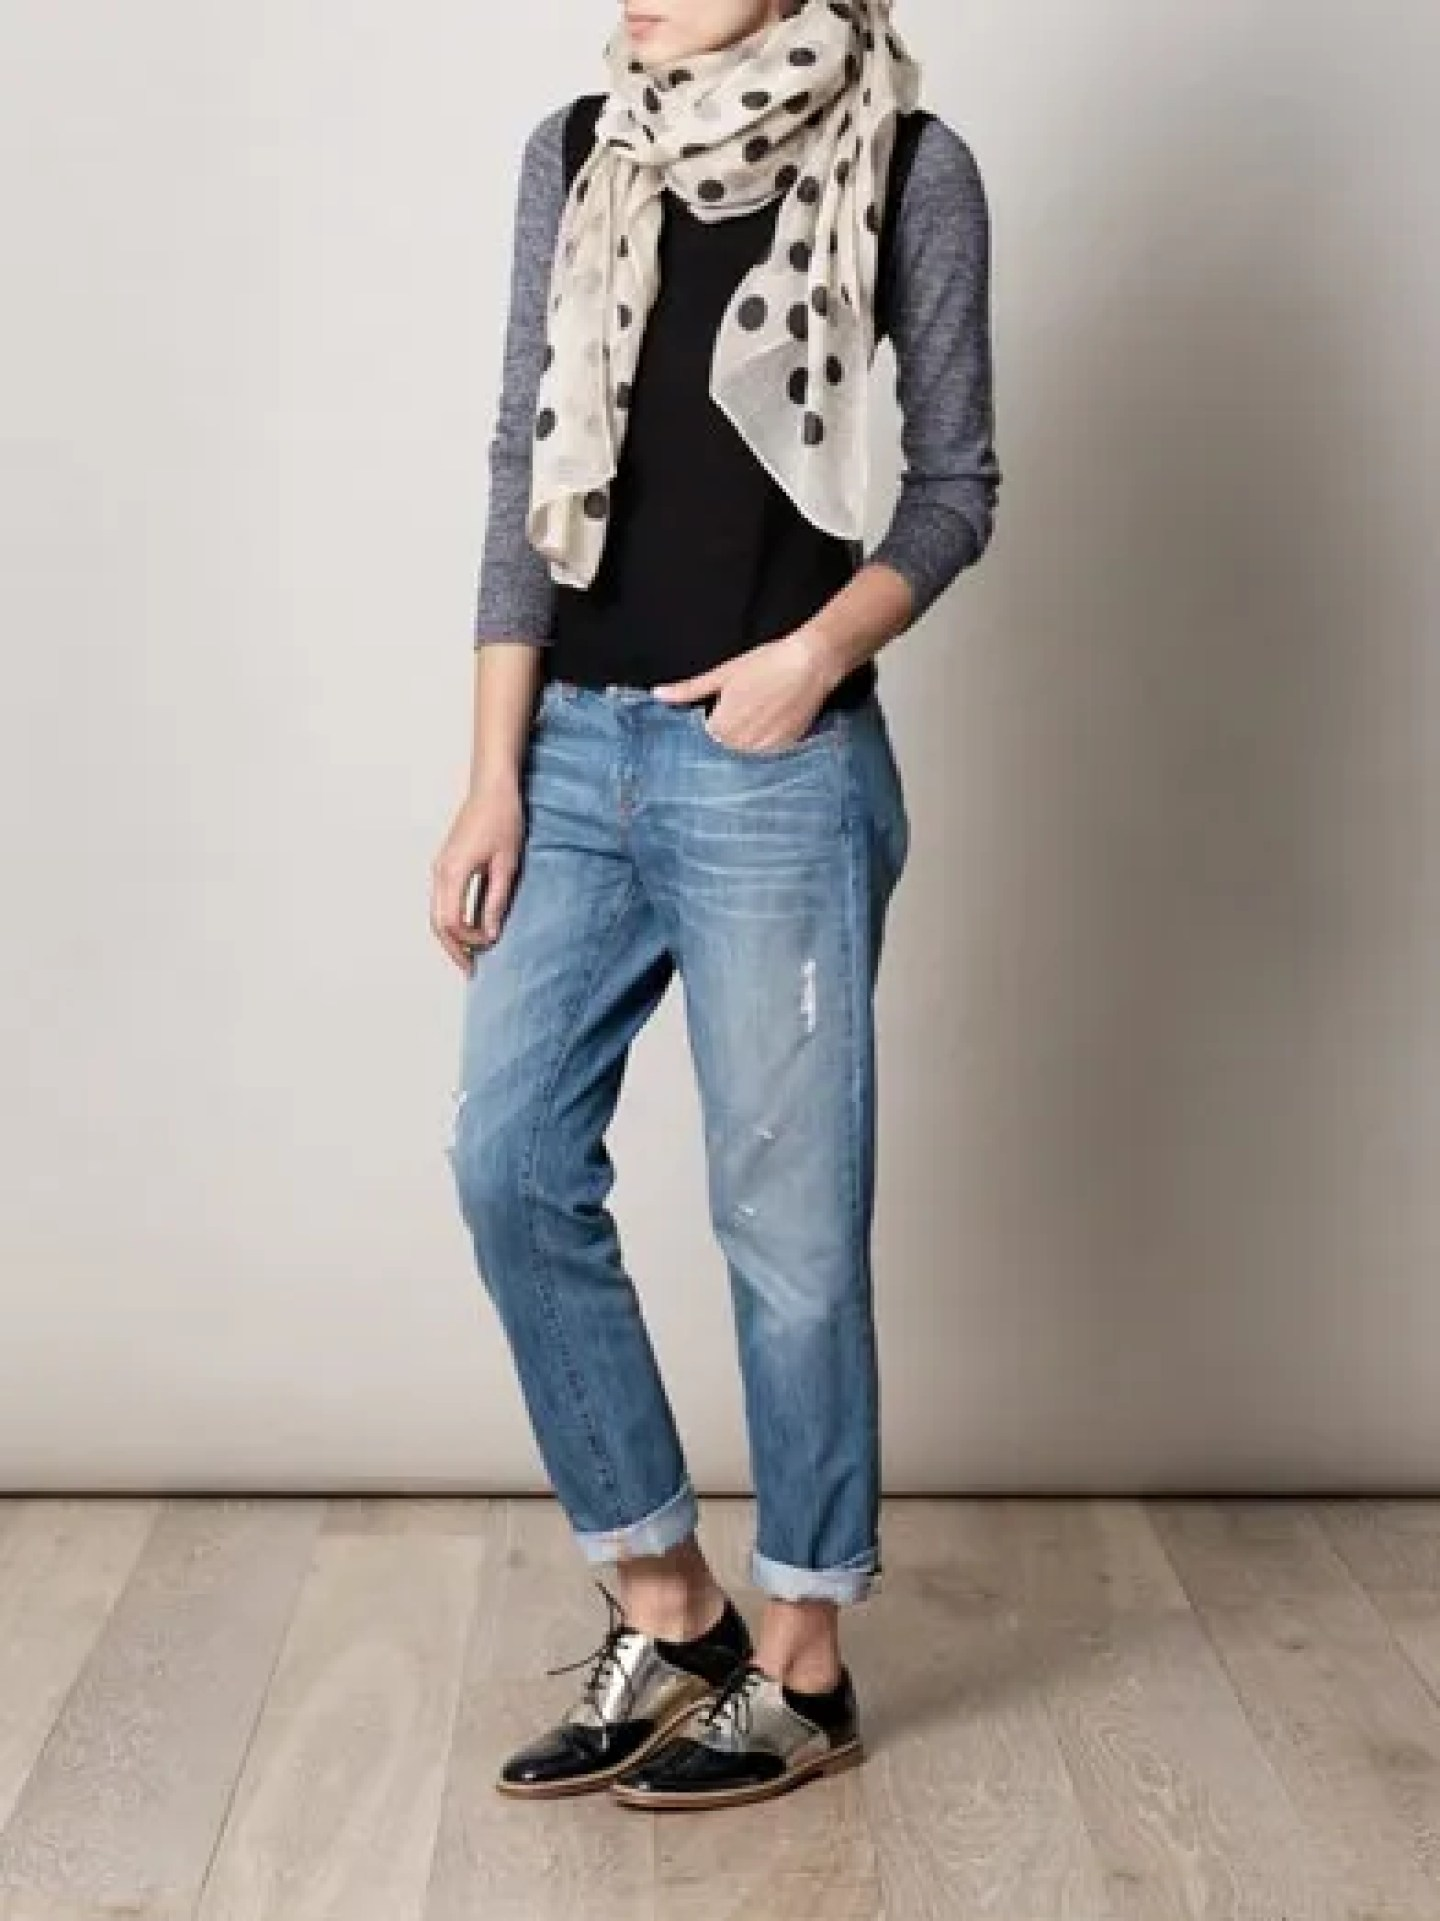 what-lizzy-loves-how-to-style-brogues-boyfriend-ripped-jeans-scarf